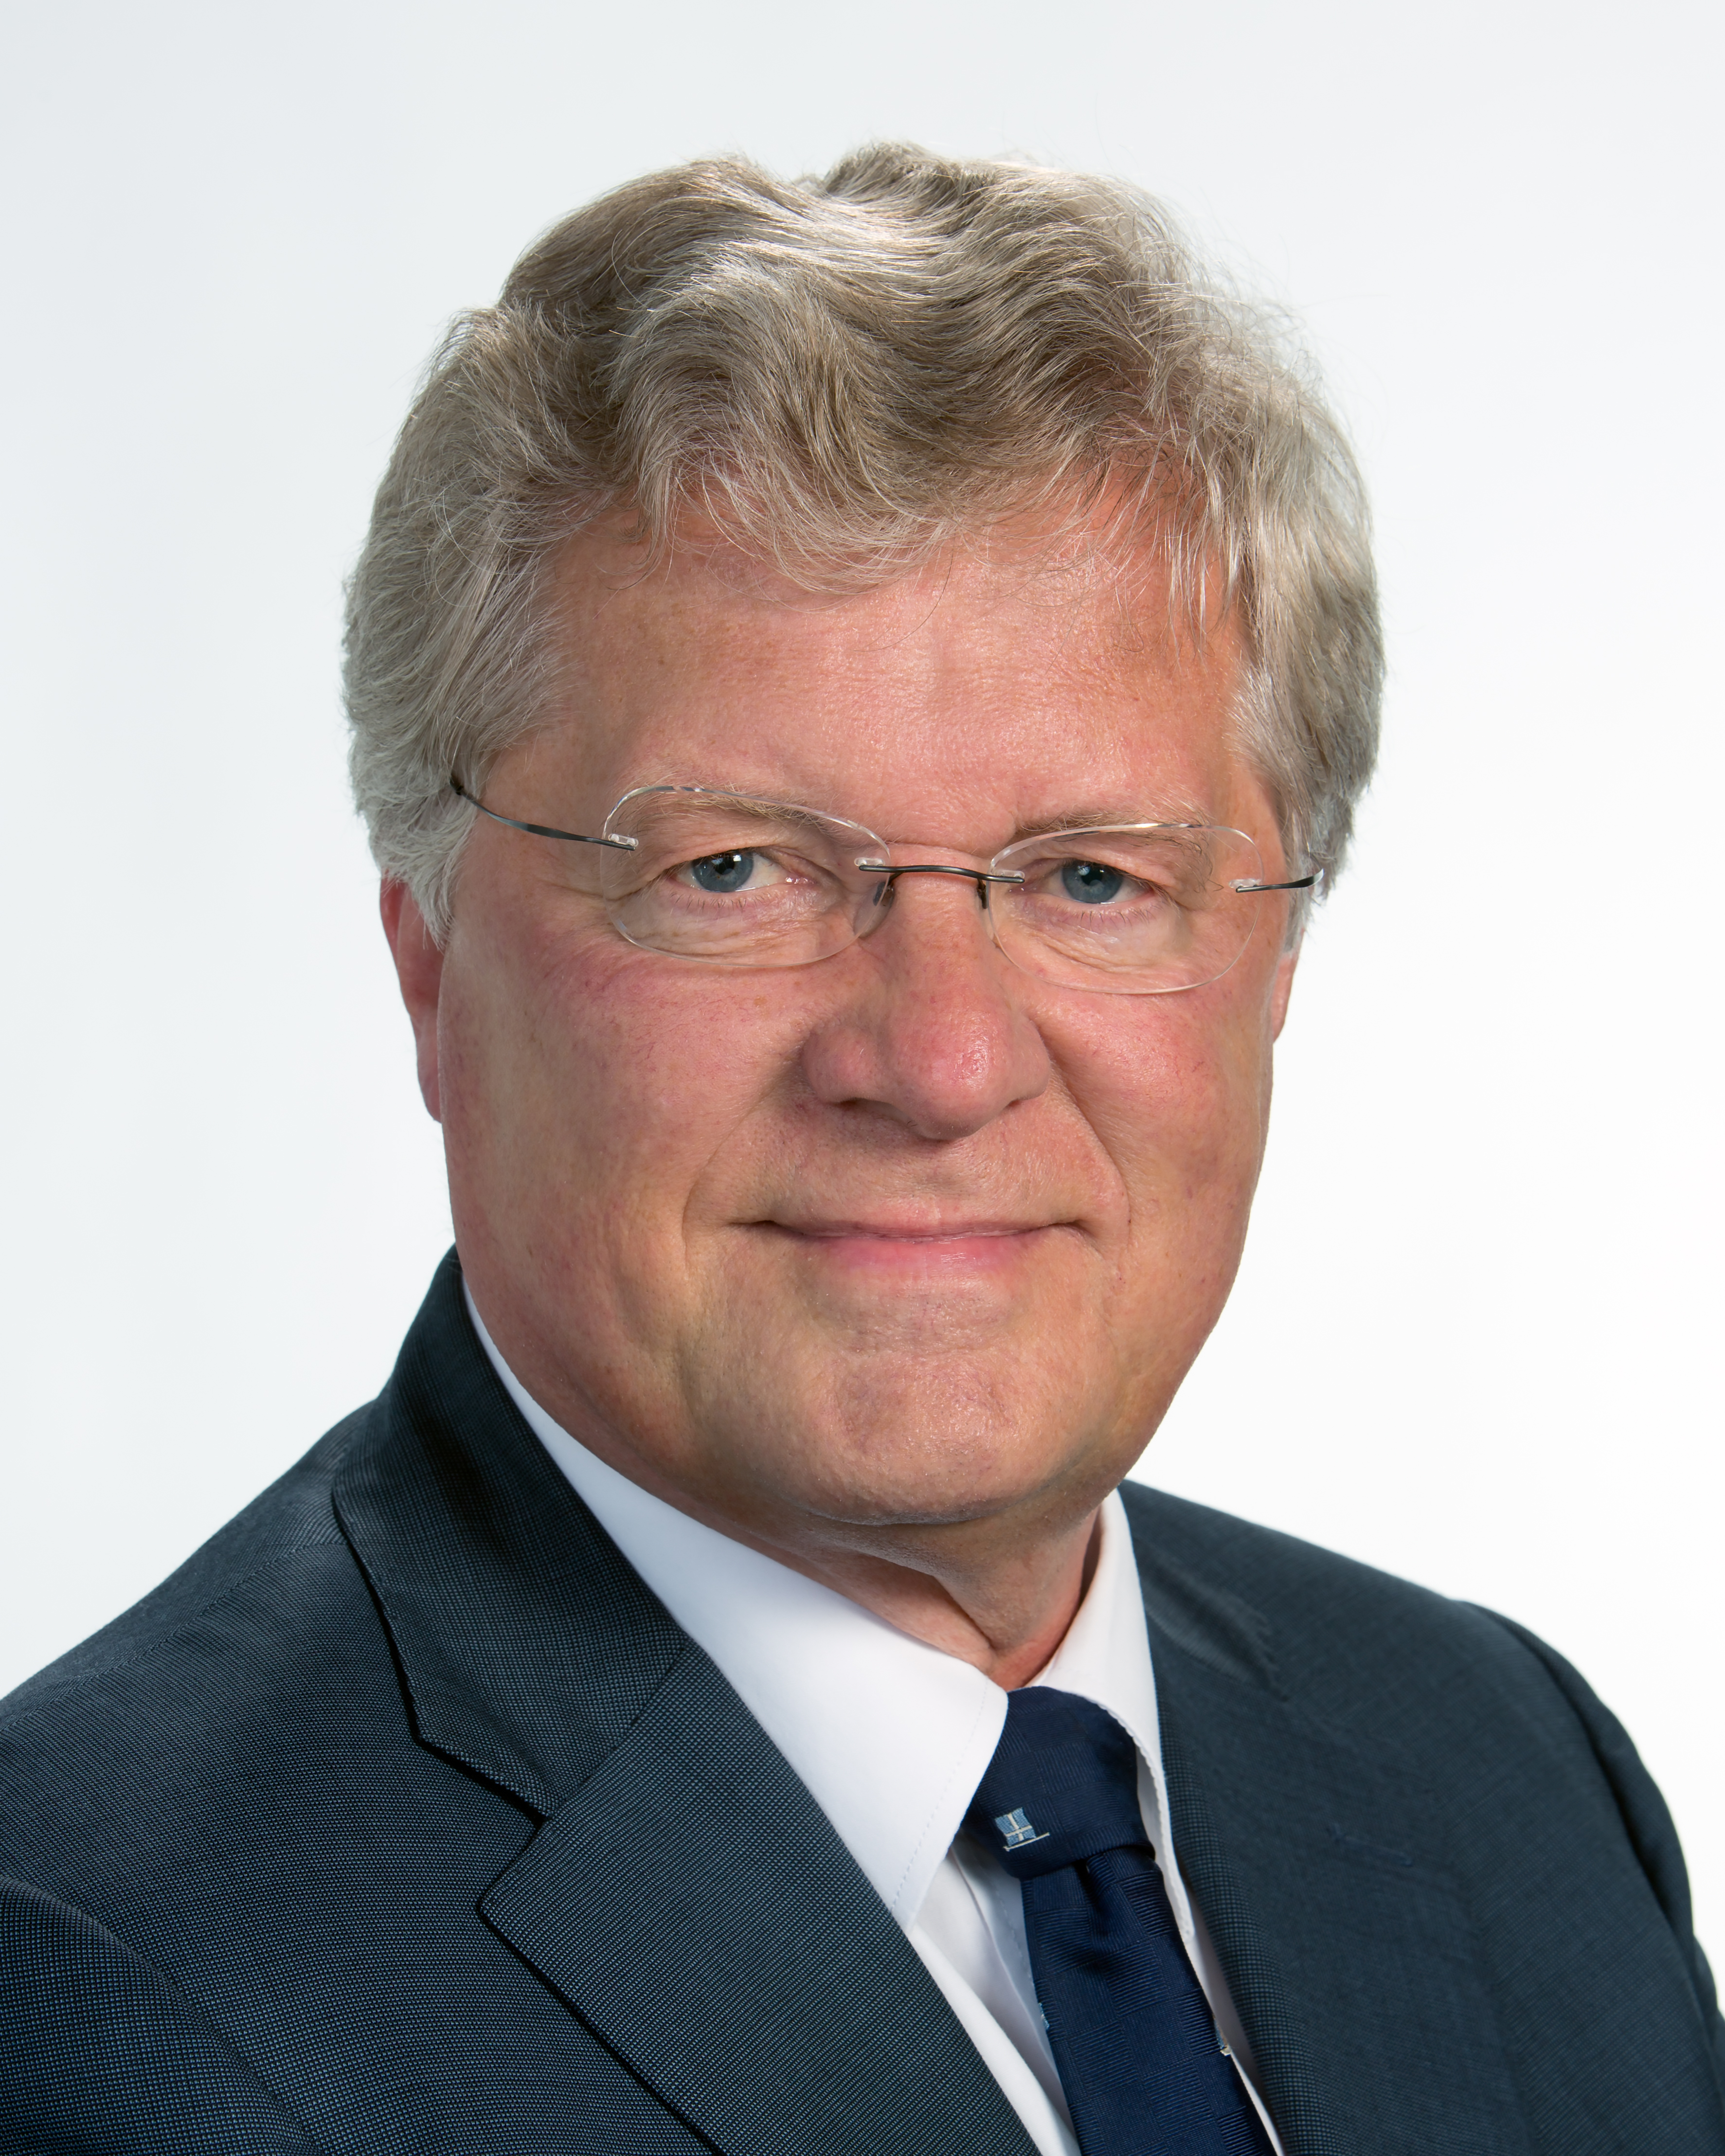 Bob Wessels: professor emeritus of International Insolvency Law at Leiden University and expert counsel to the European Commission